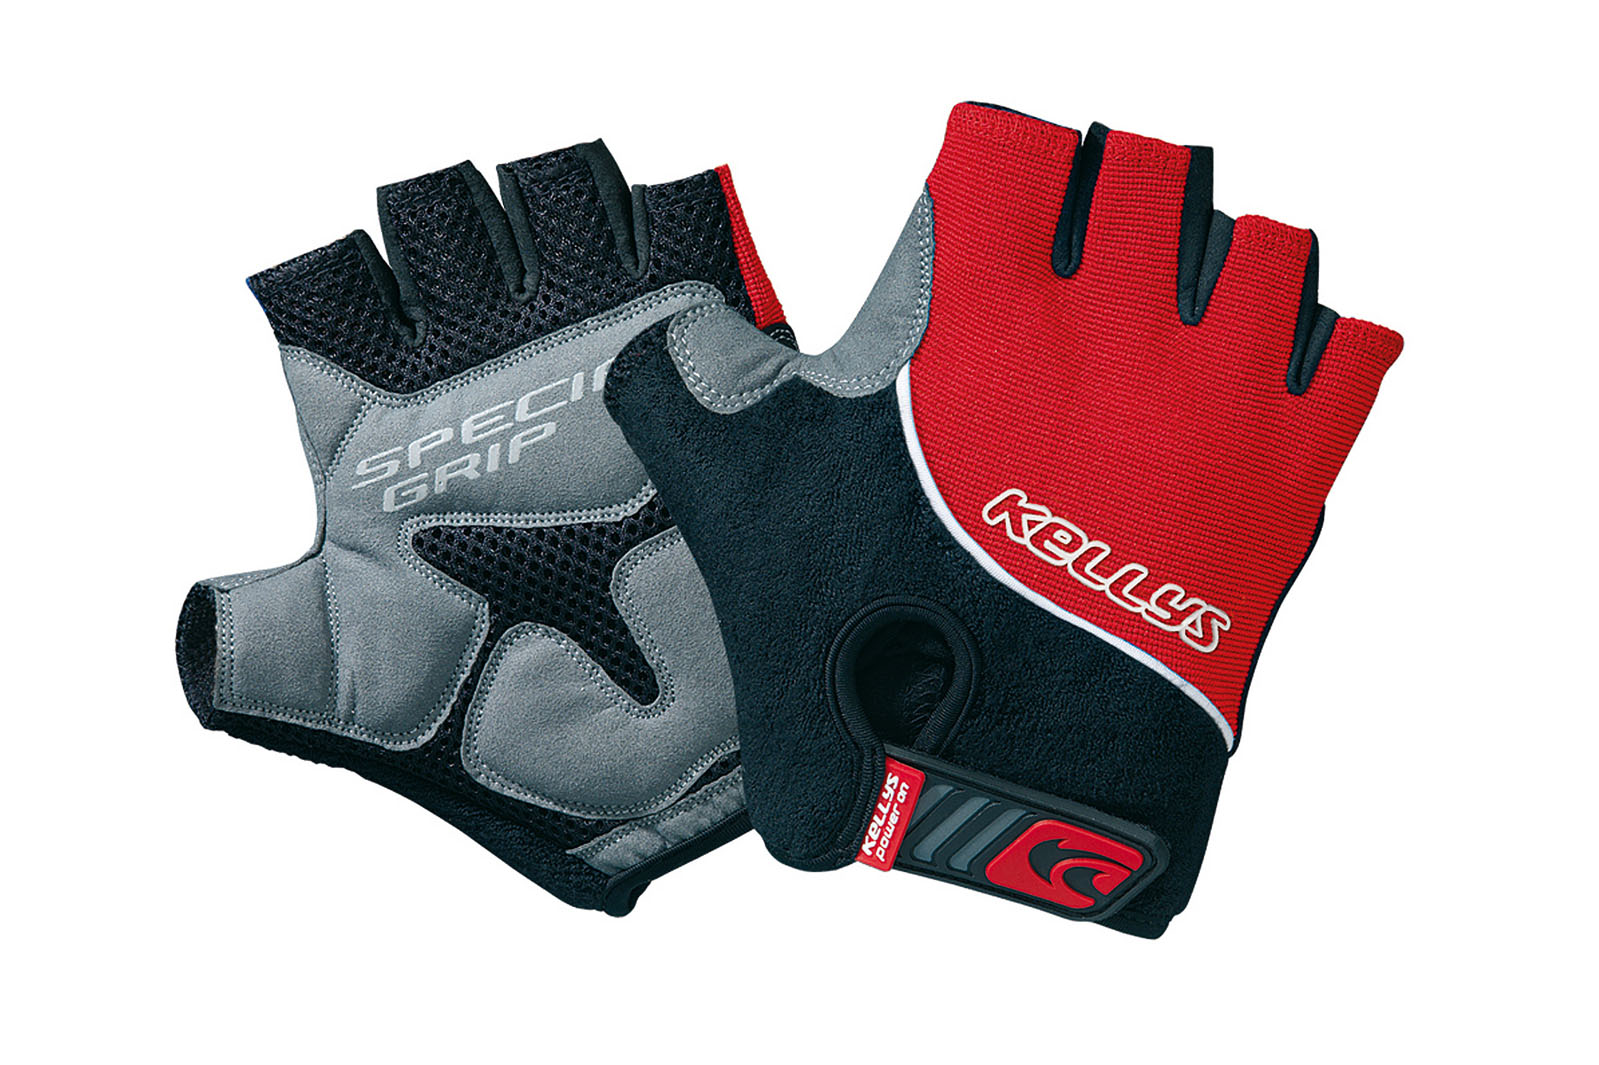 Handschuhe RACE red XS - Handschuhe RACE red XS